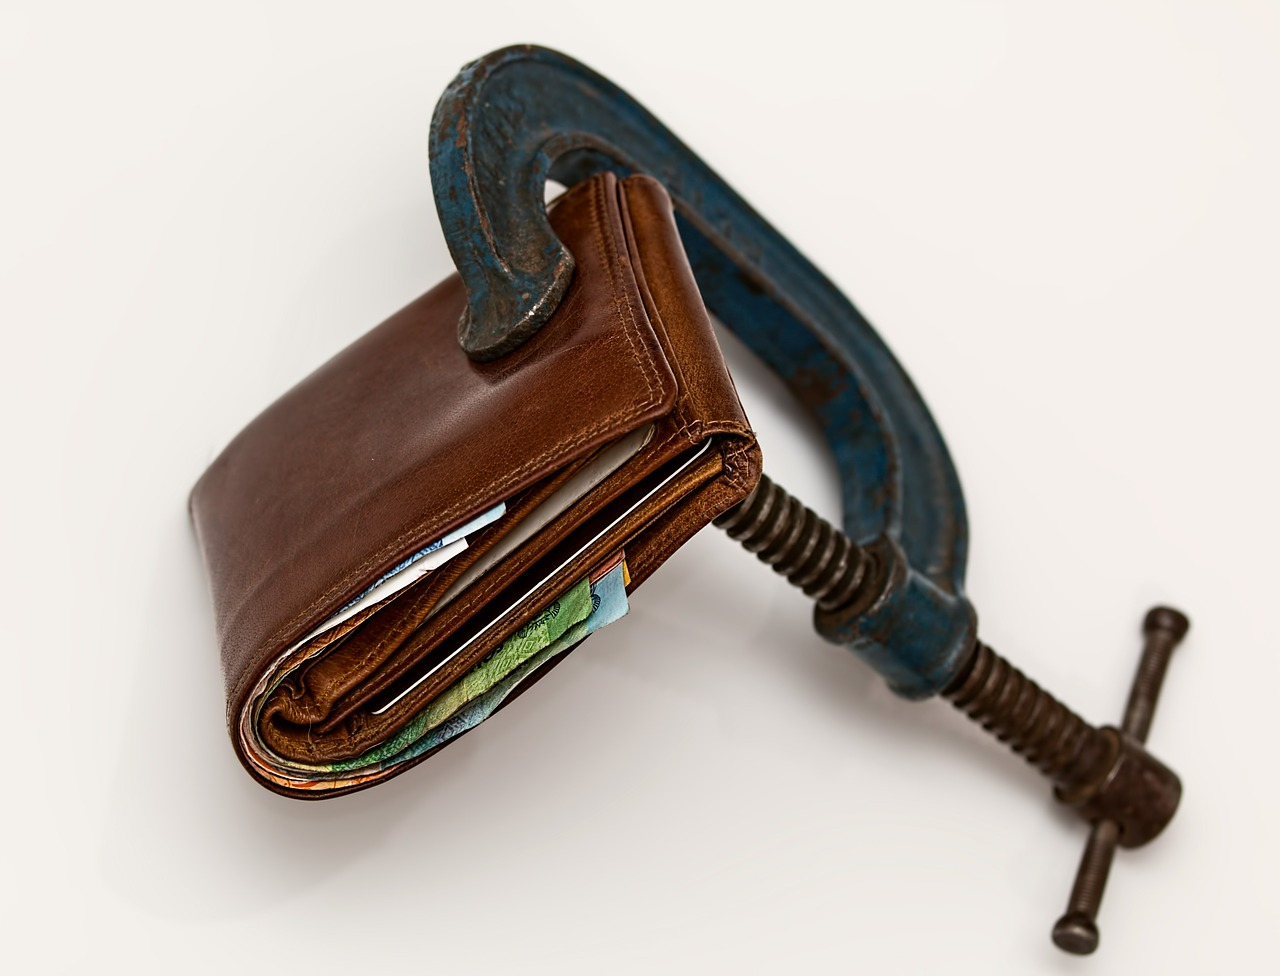 vise squeezing a wallet